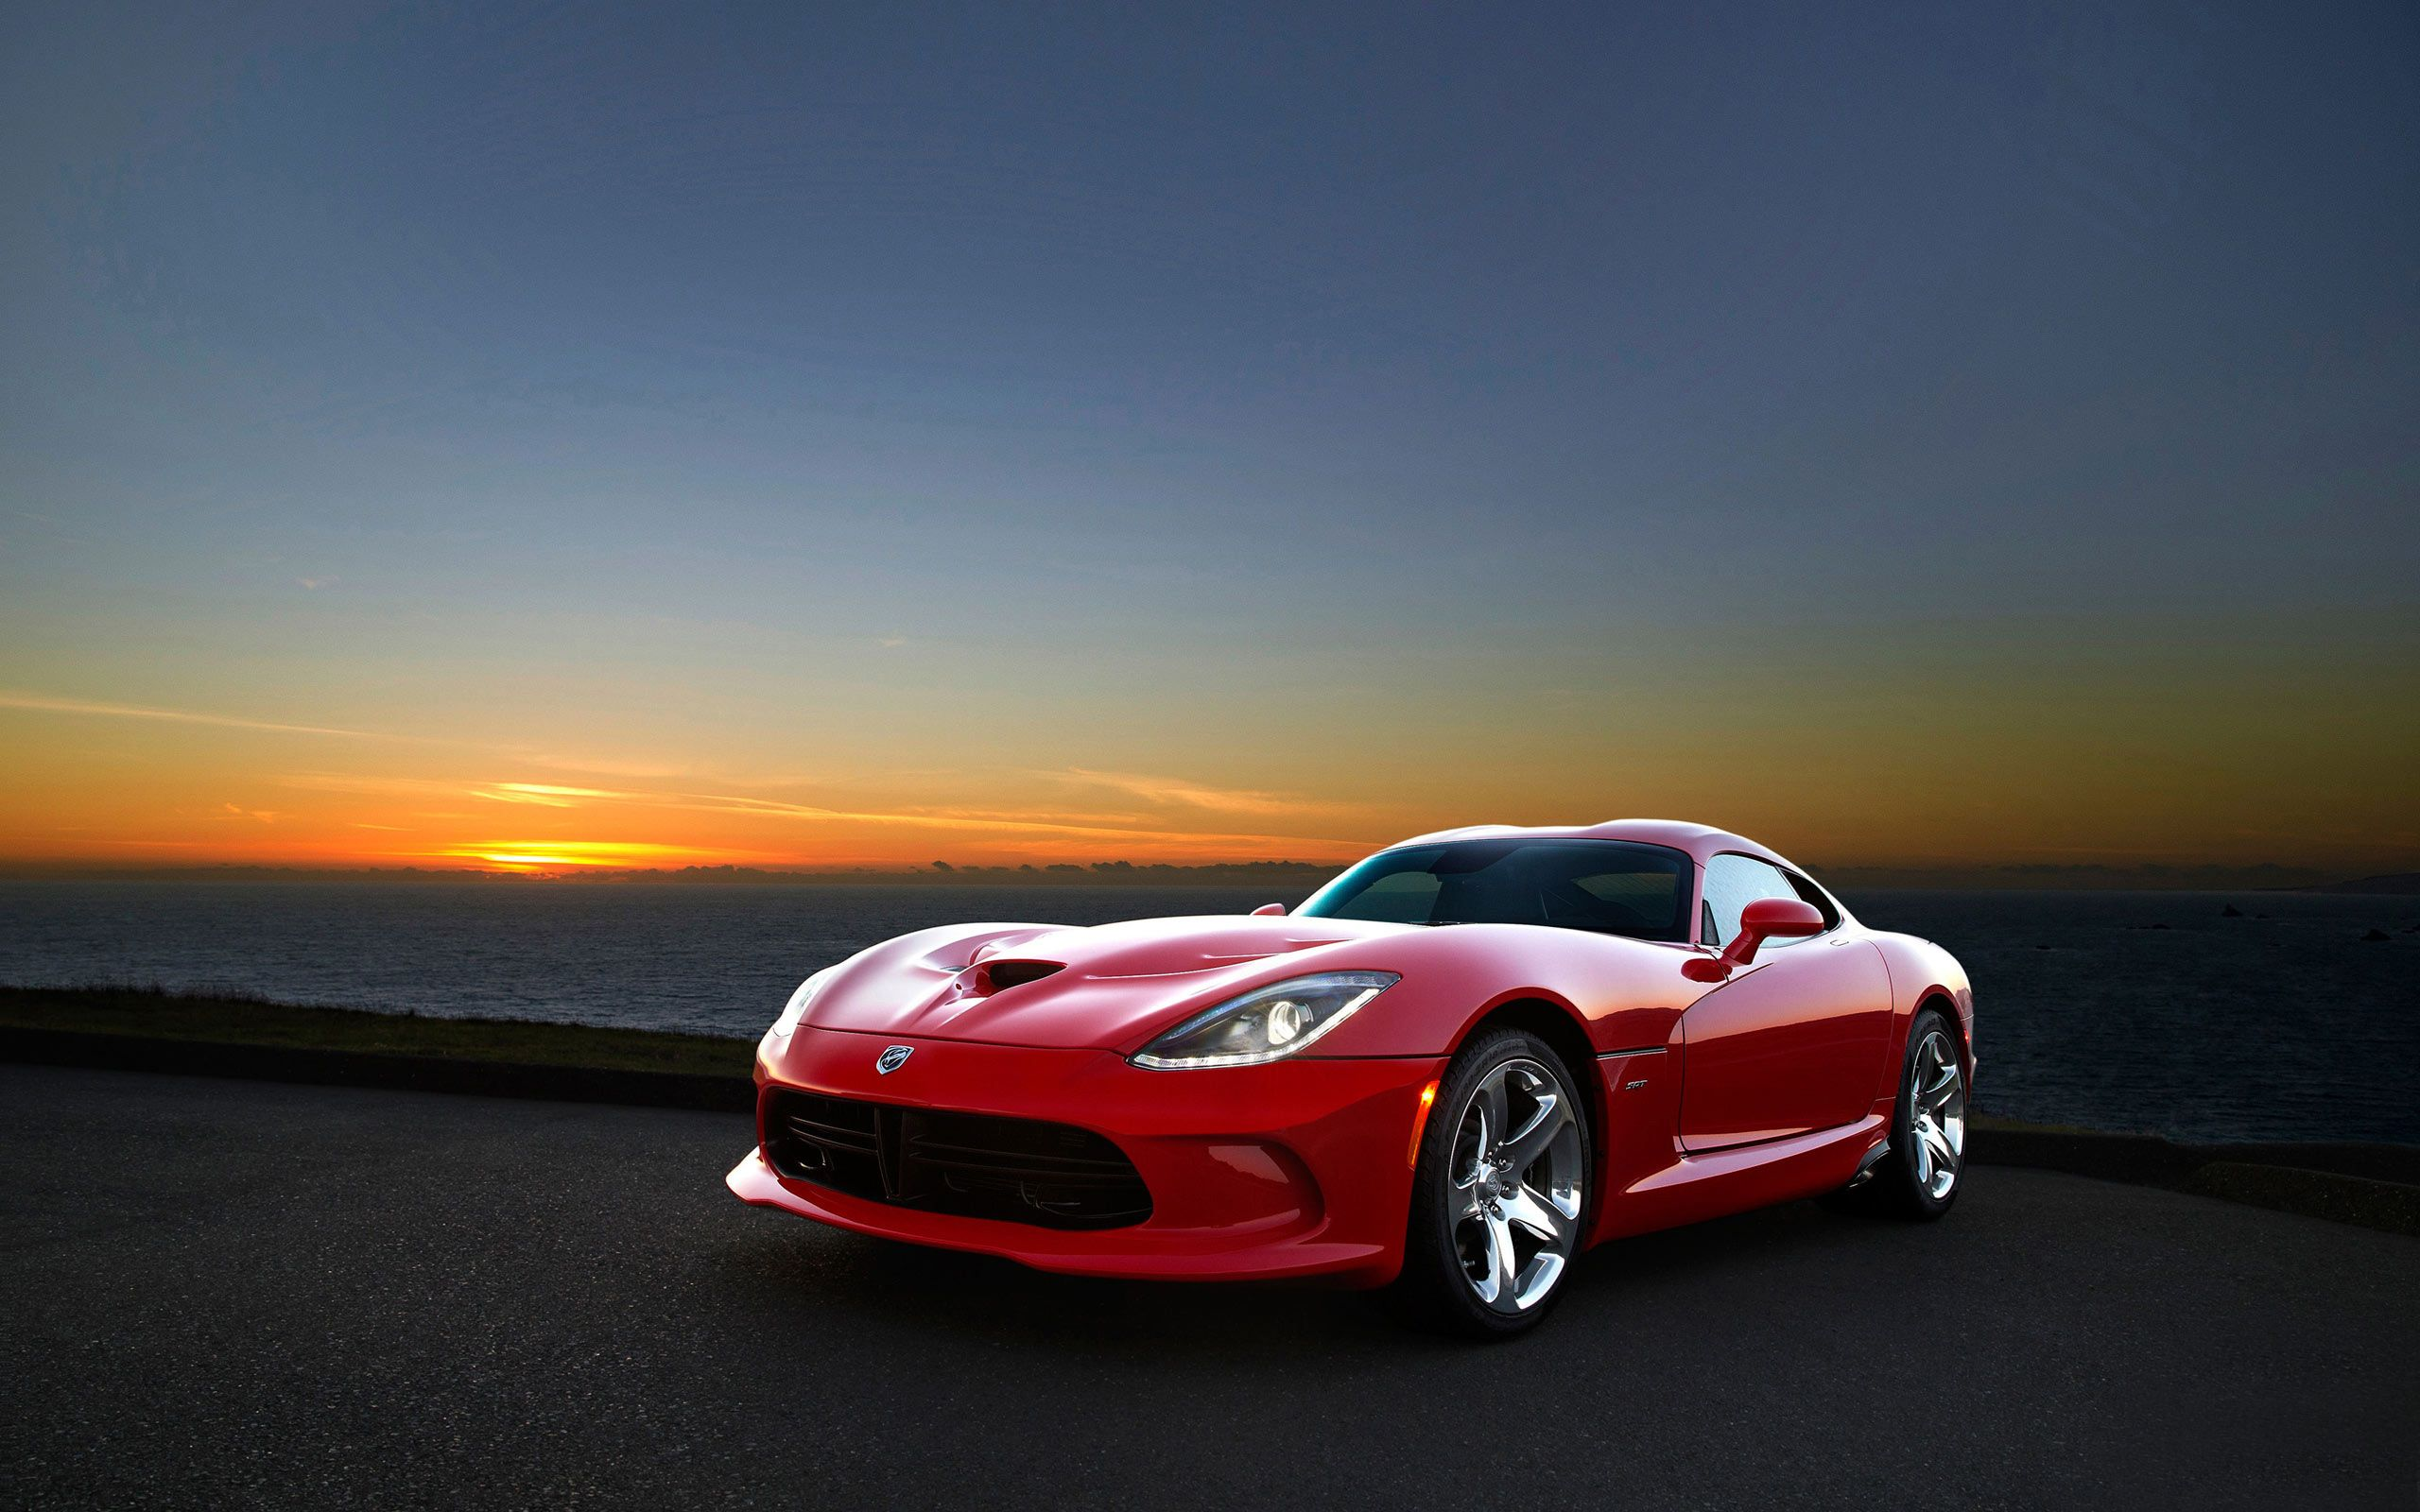 Click Here To Download In HD Format U003eu003e Srt Dodge Viper Hd Wallpapers Http: